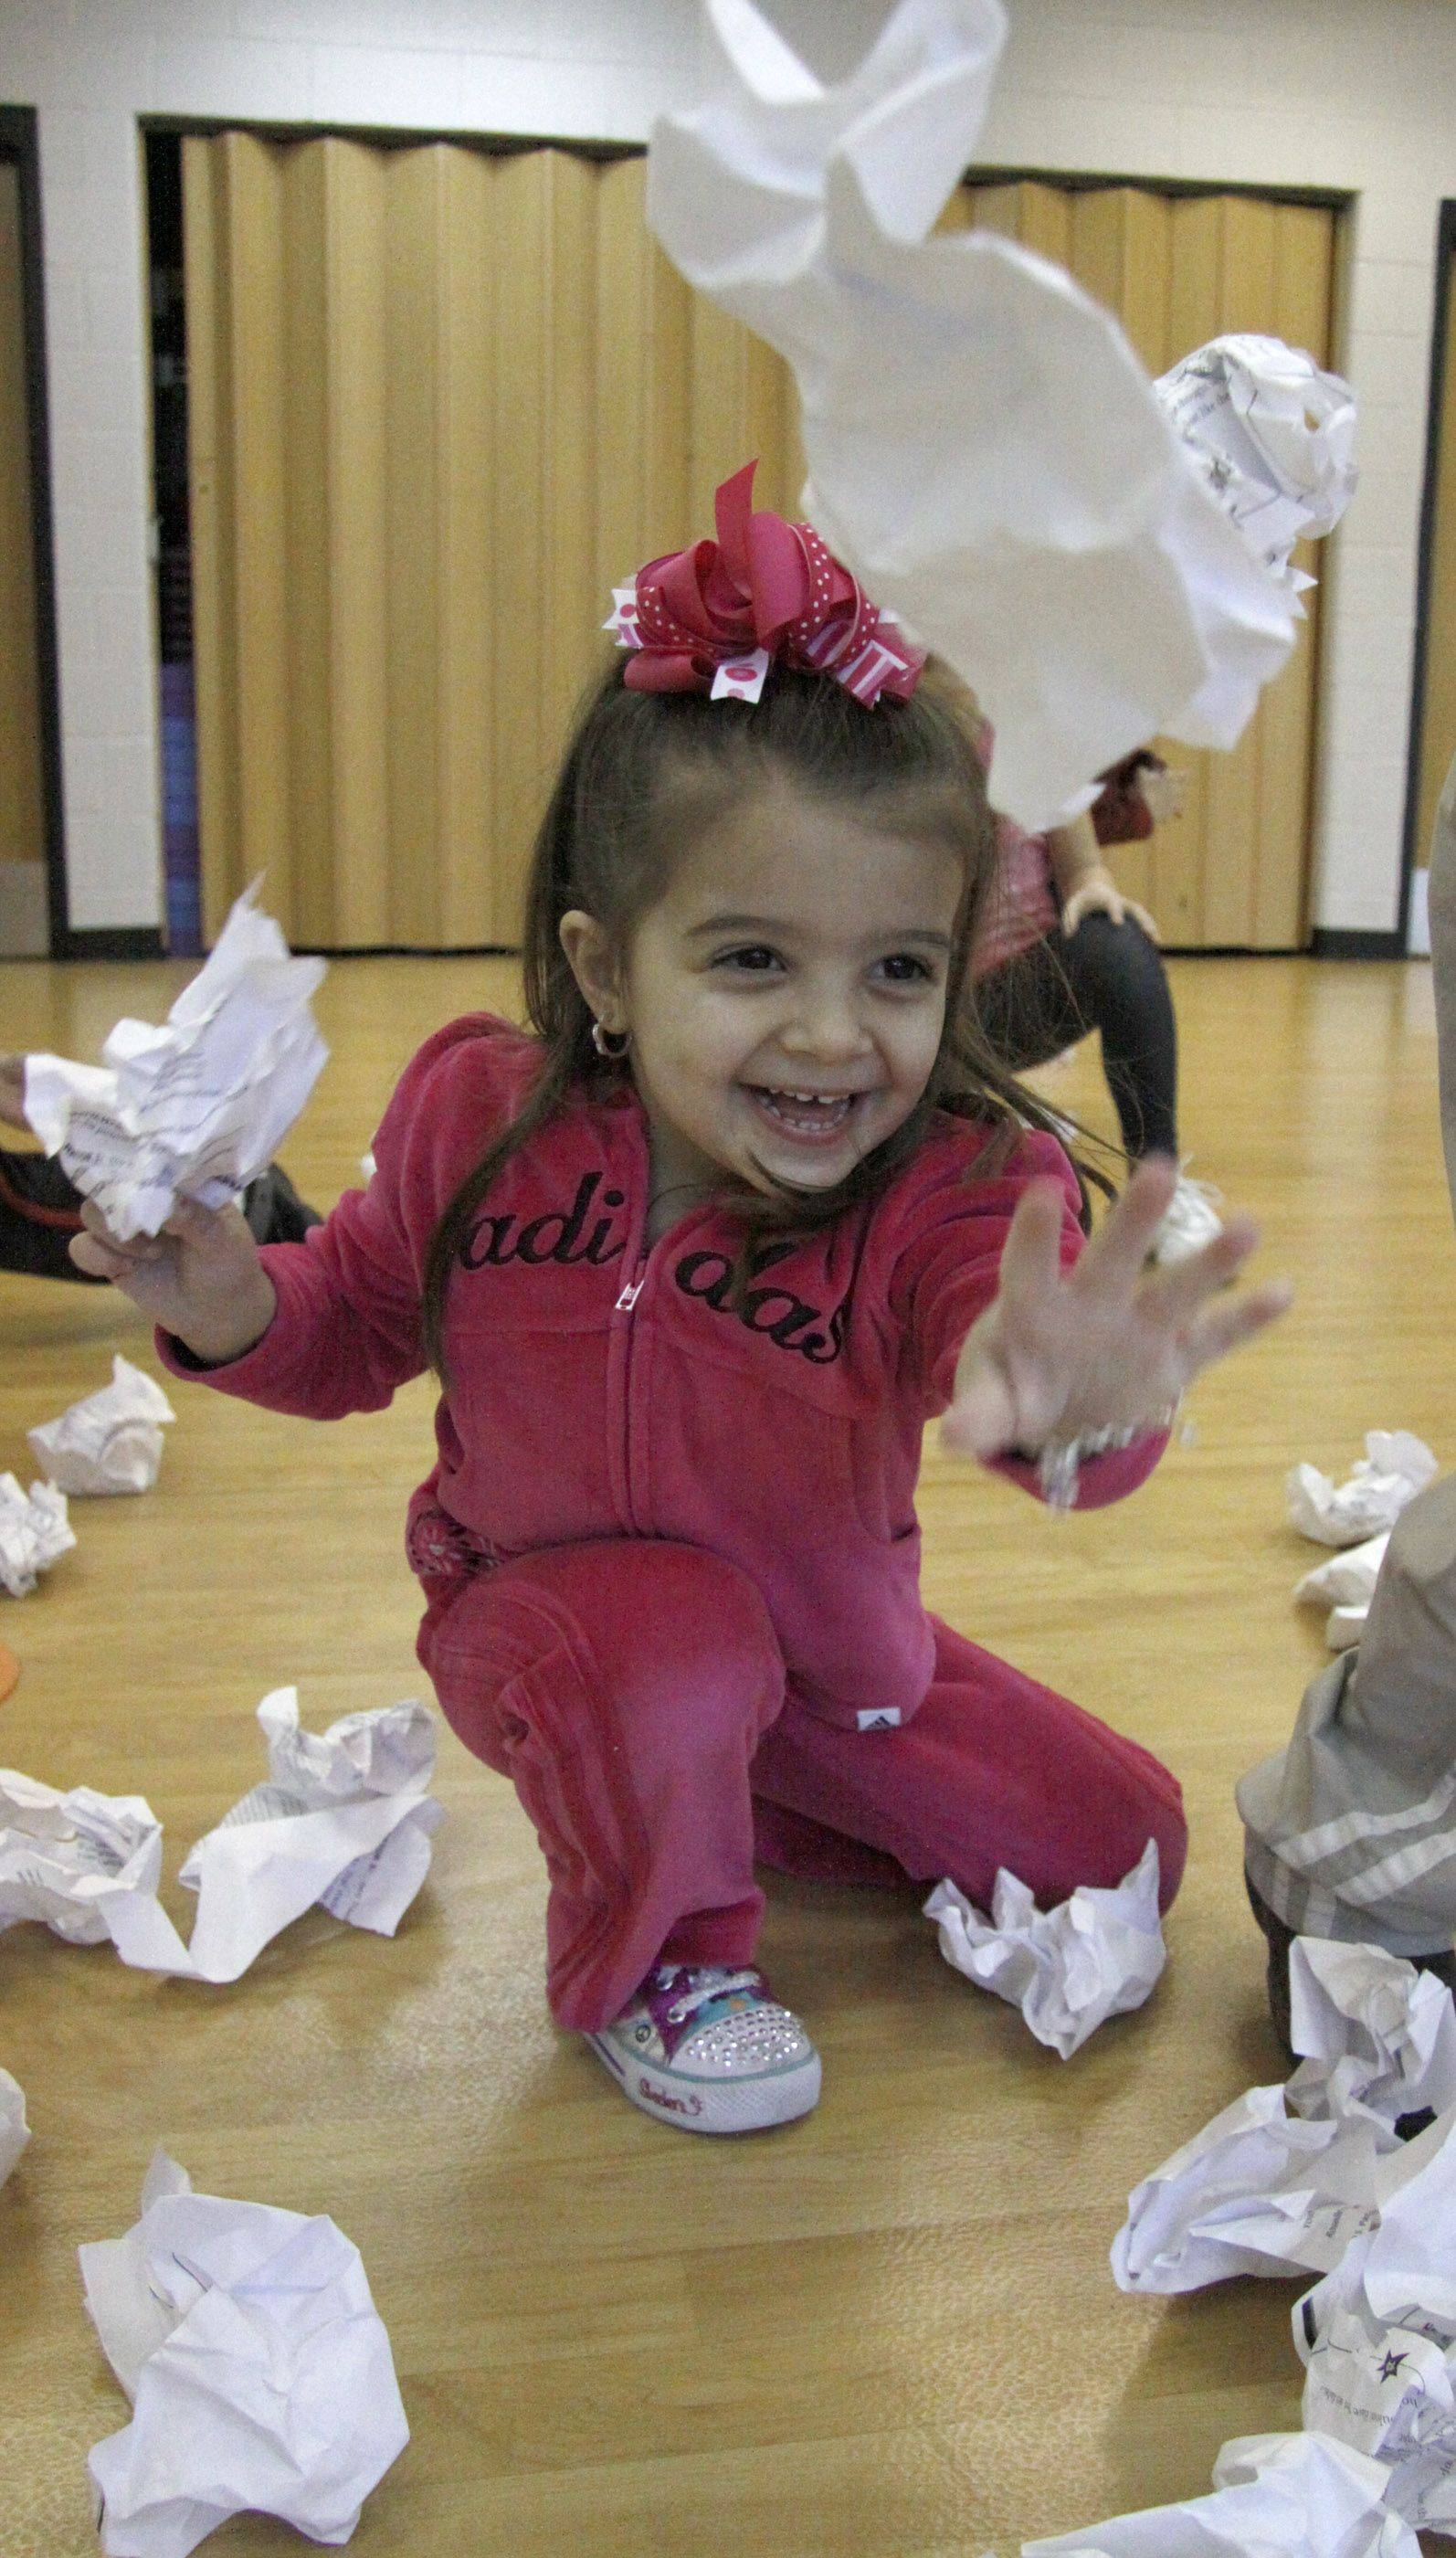 Dominique Gironda, 3, of Roselle throws snowballs Saturday at the Clauss Recreation Center in Roselle.